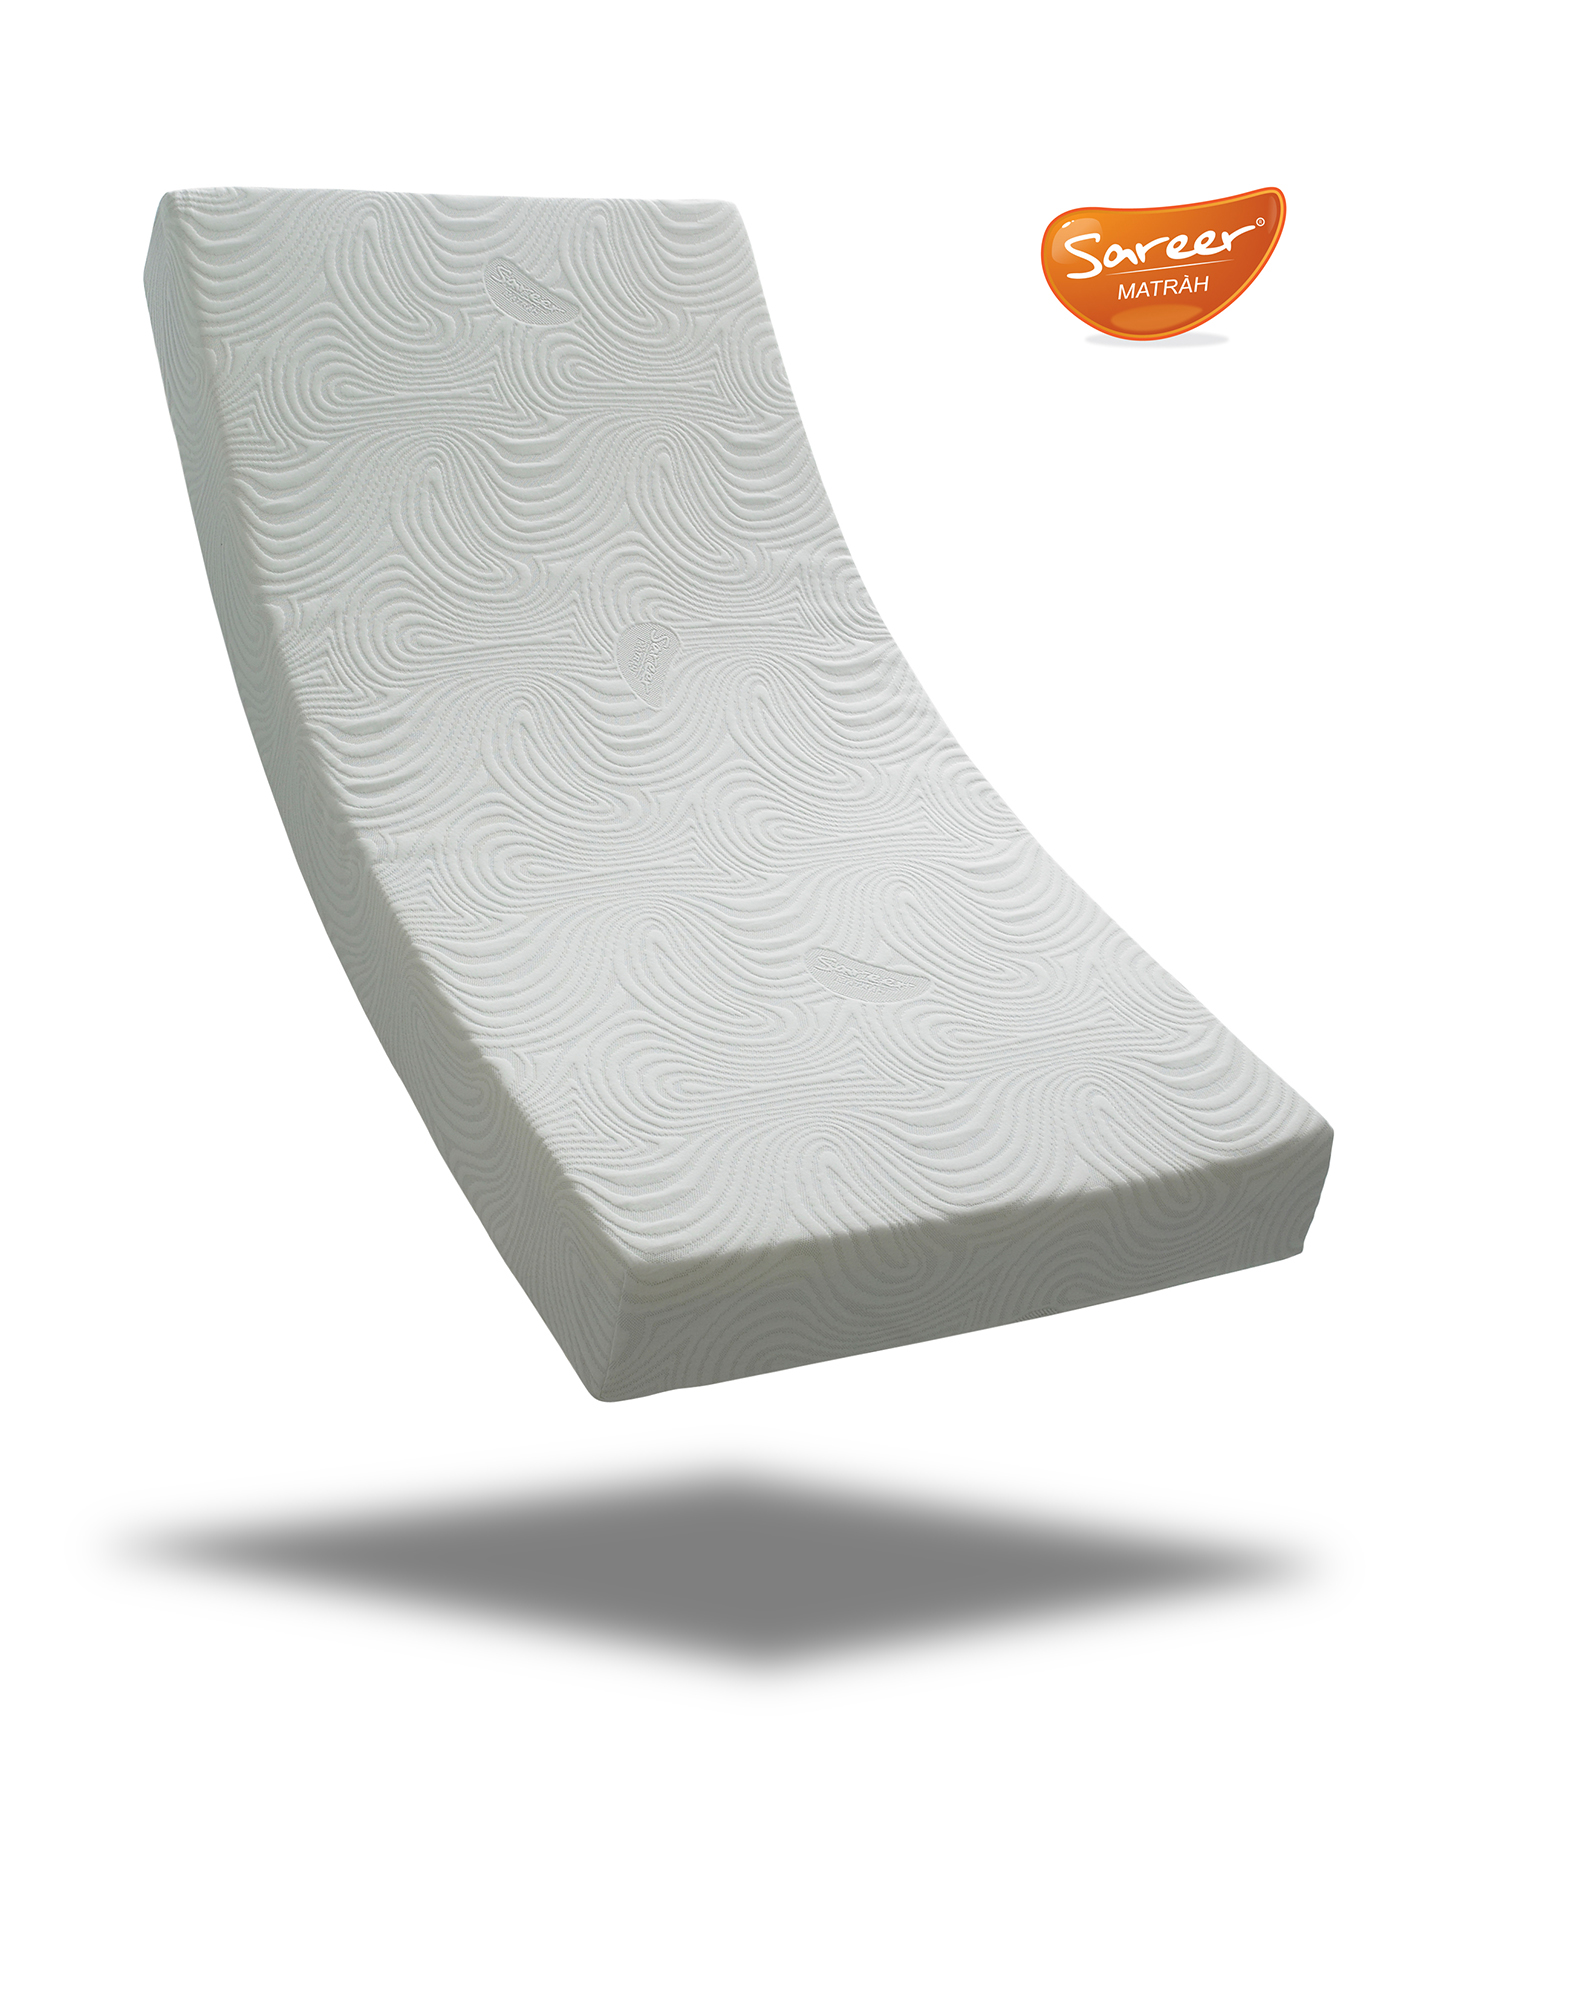 lucid inch mattress charming latex your design memory for plush twin foam gel bedroom size